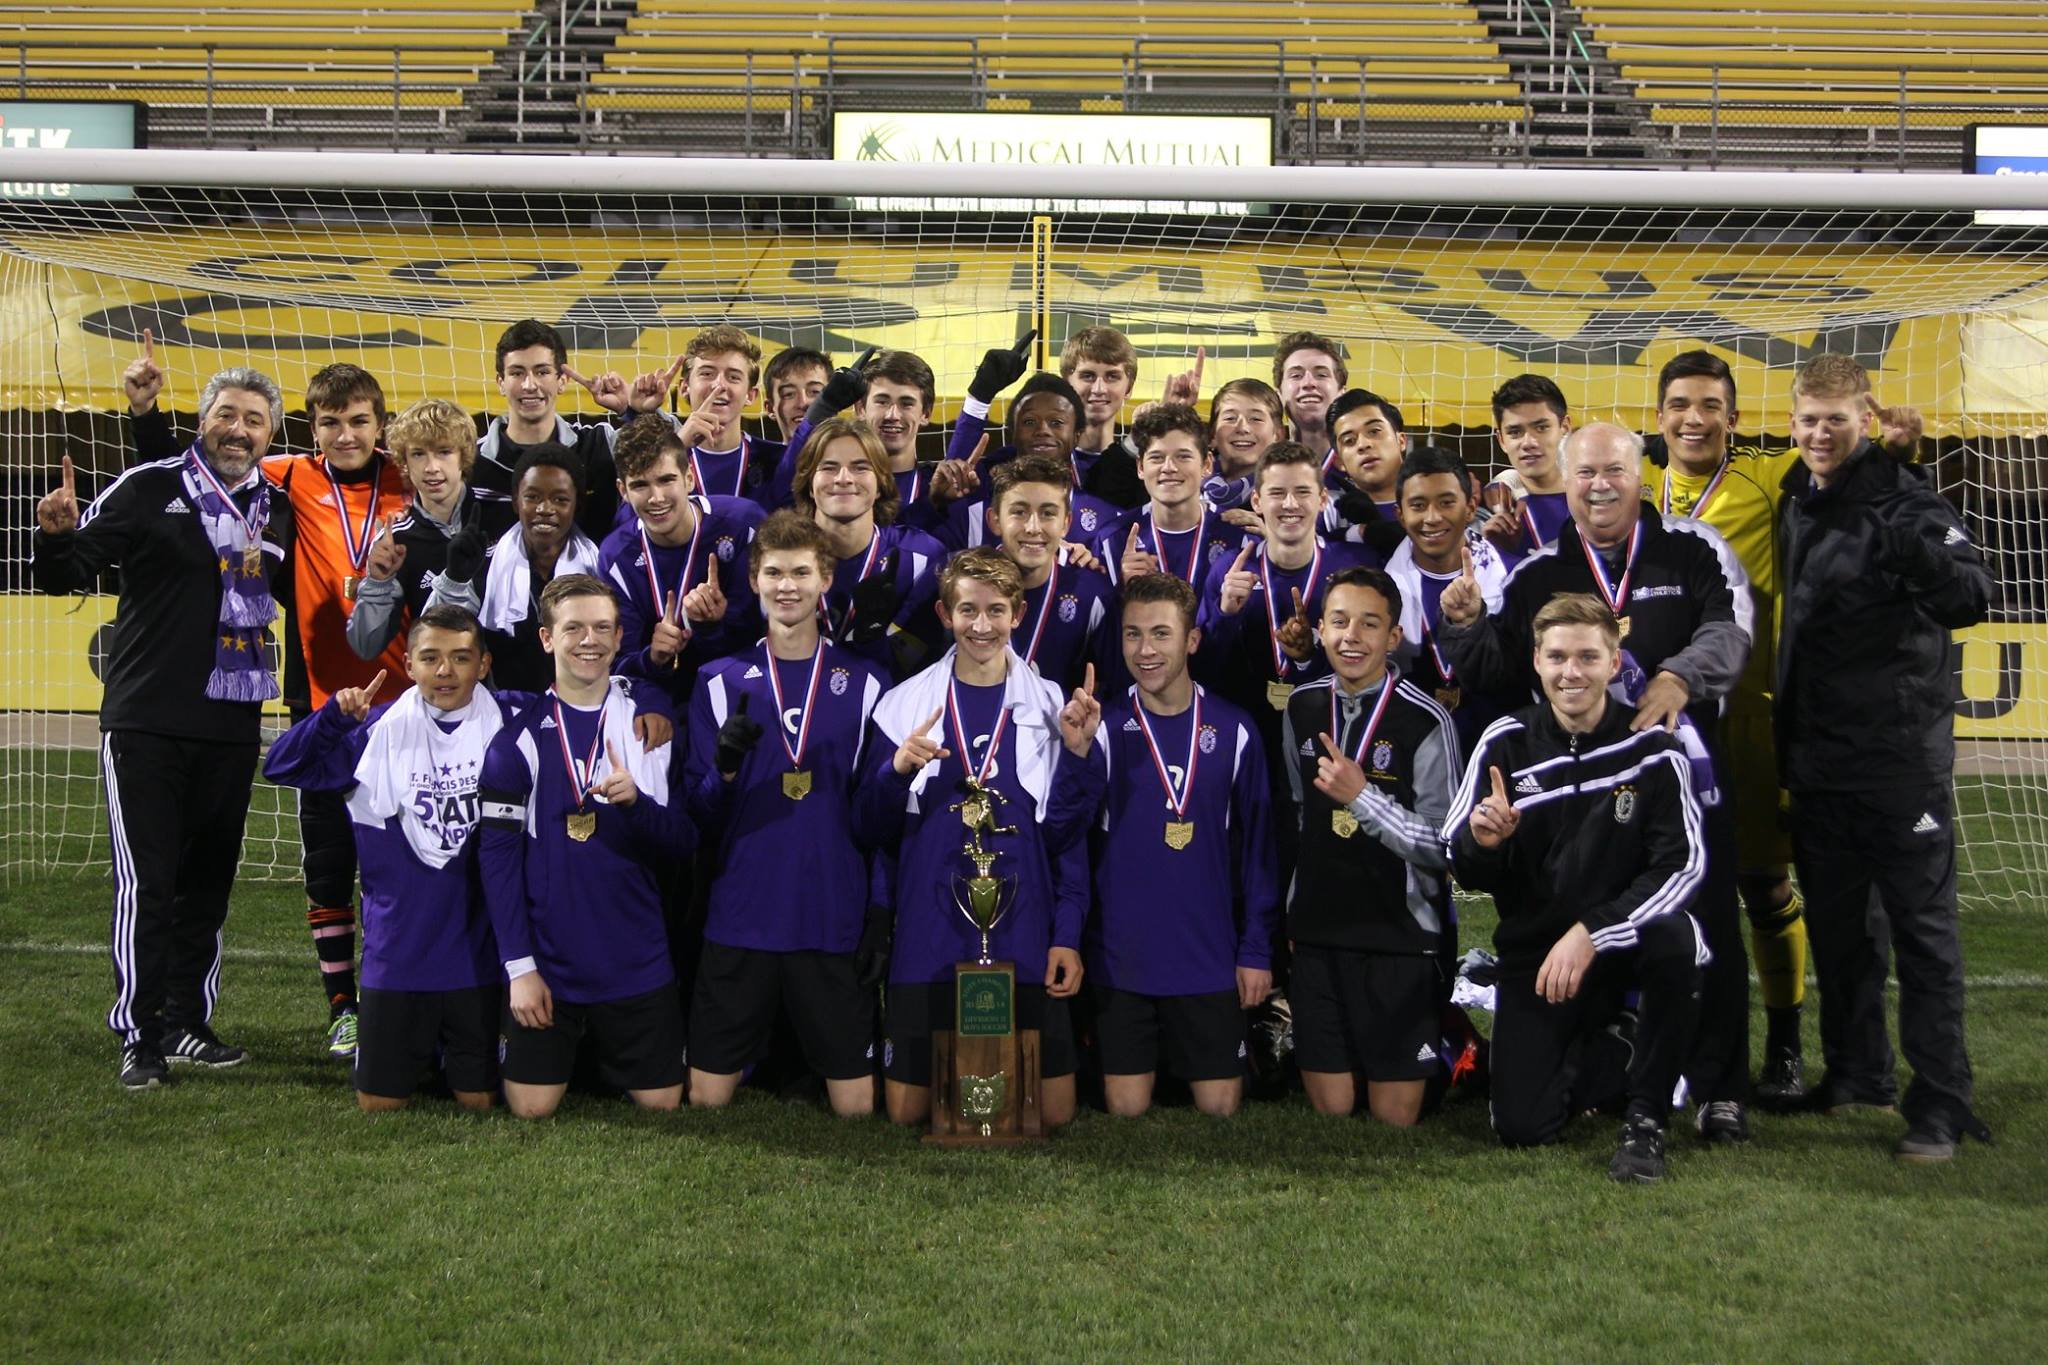 2014 Division-II State Champions